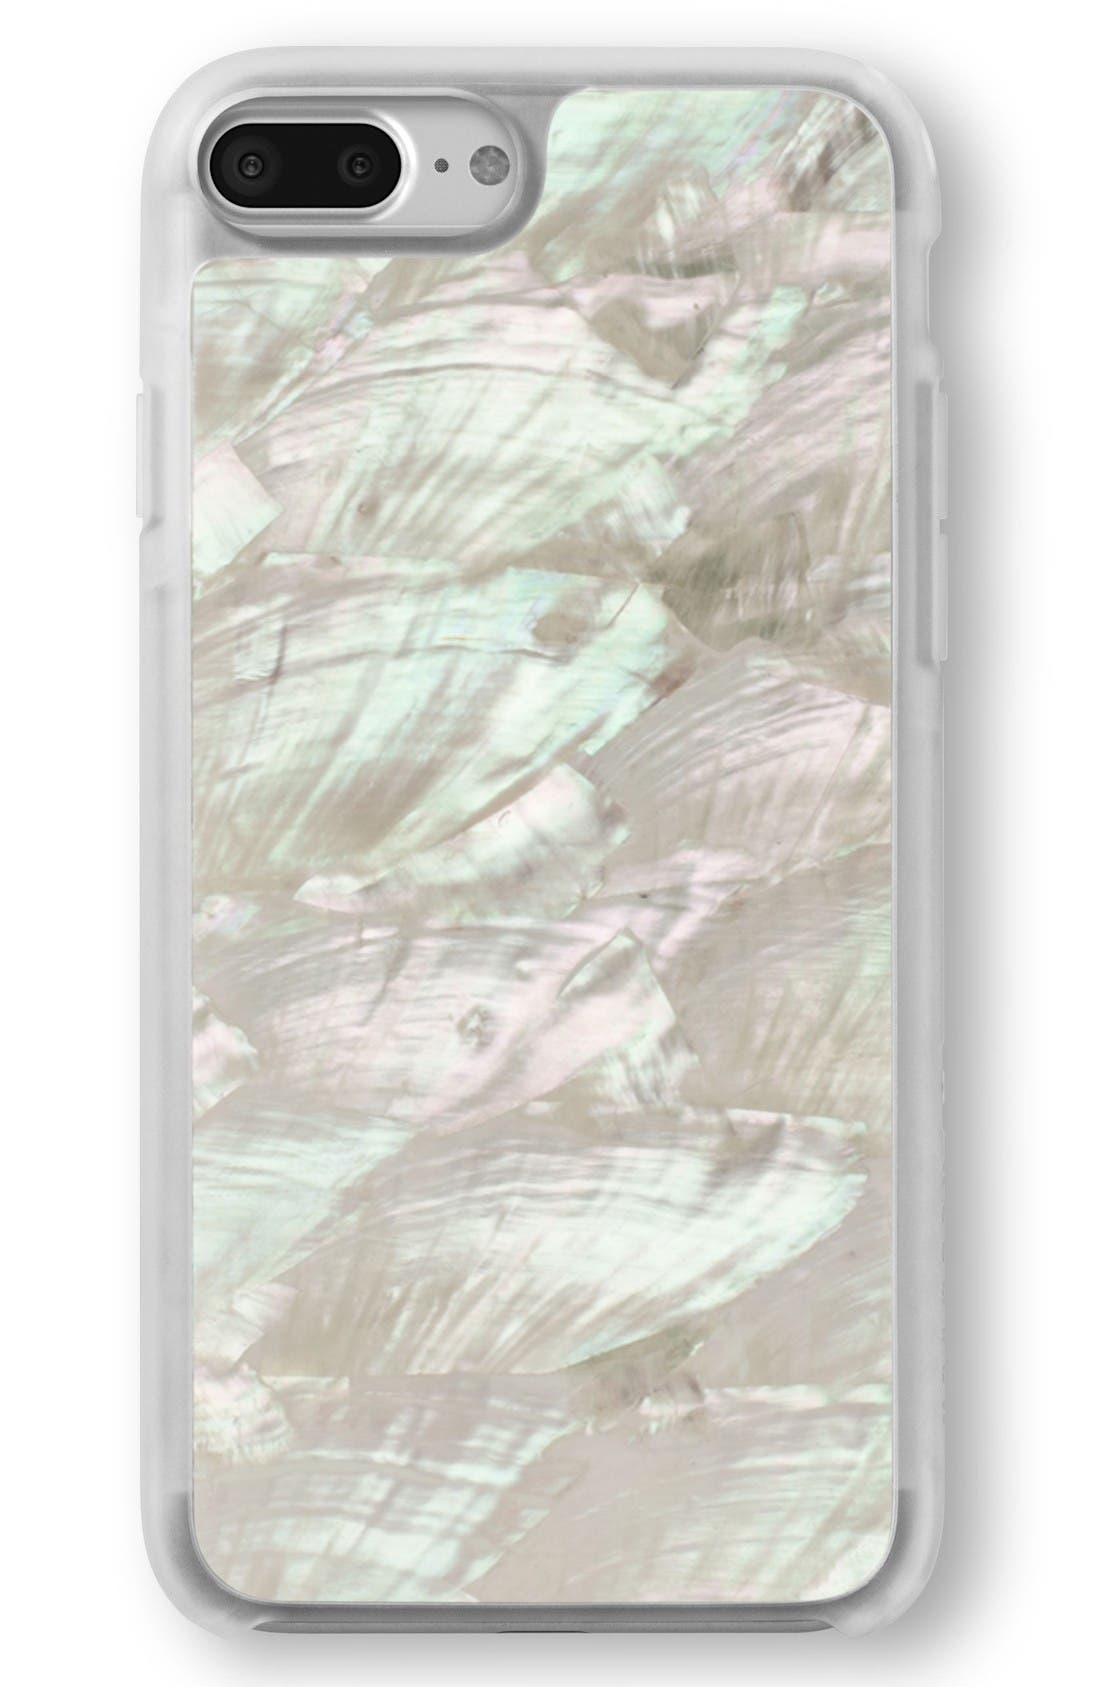 Recover White Abalone iPhone 6/6s/7/8 & 6/6s/7/8 Plus Case